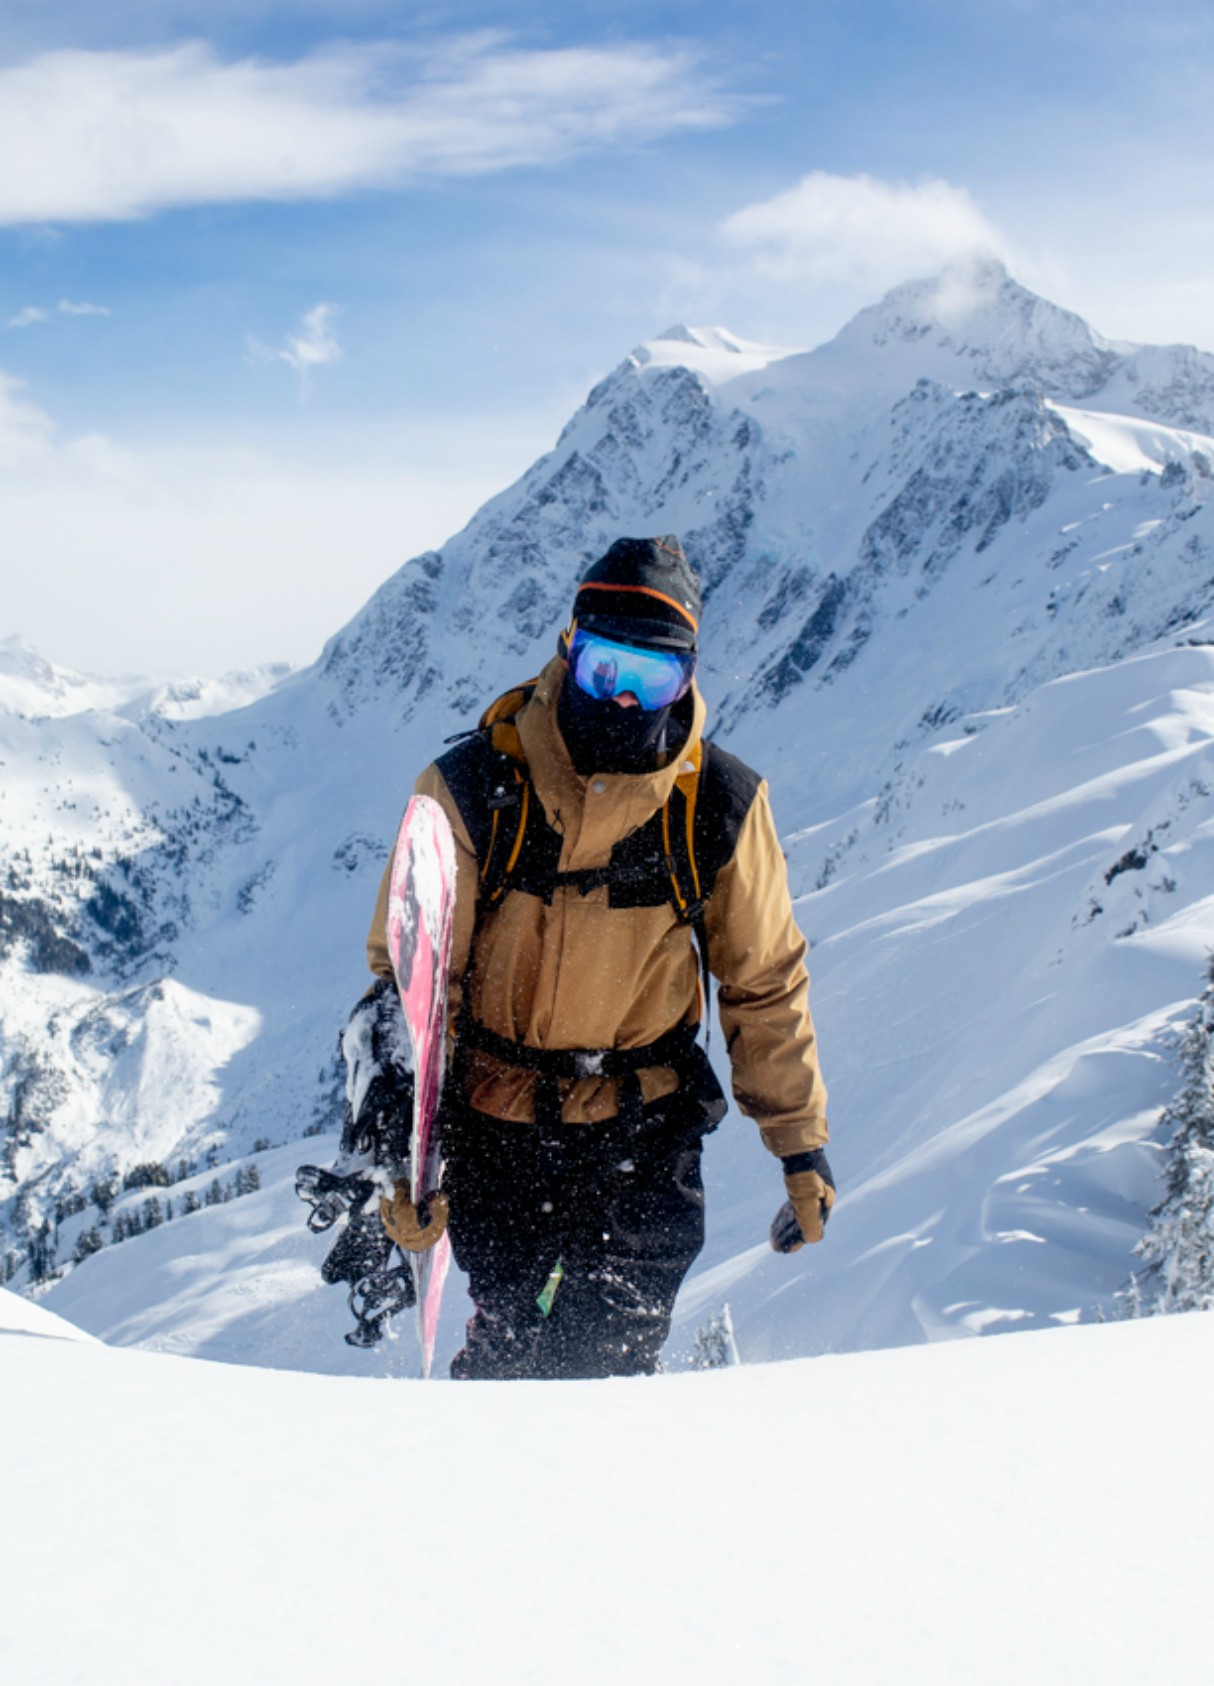 The North Face DRT Collection Skiwear